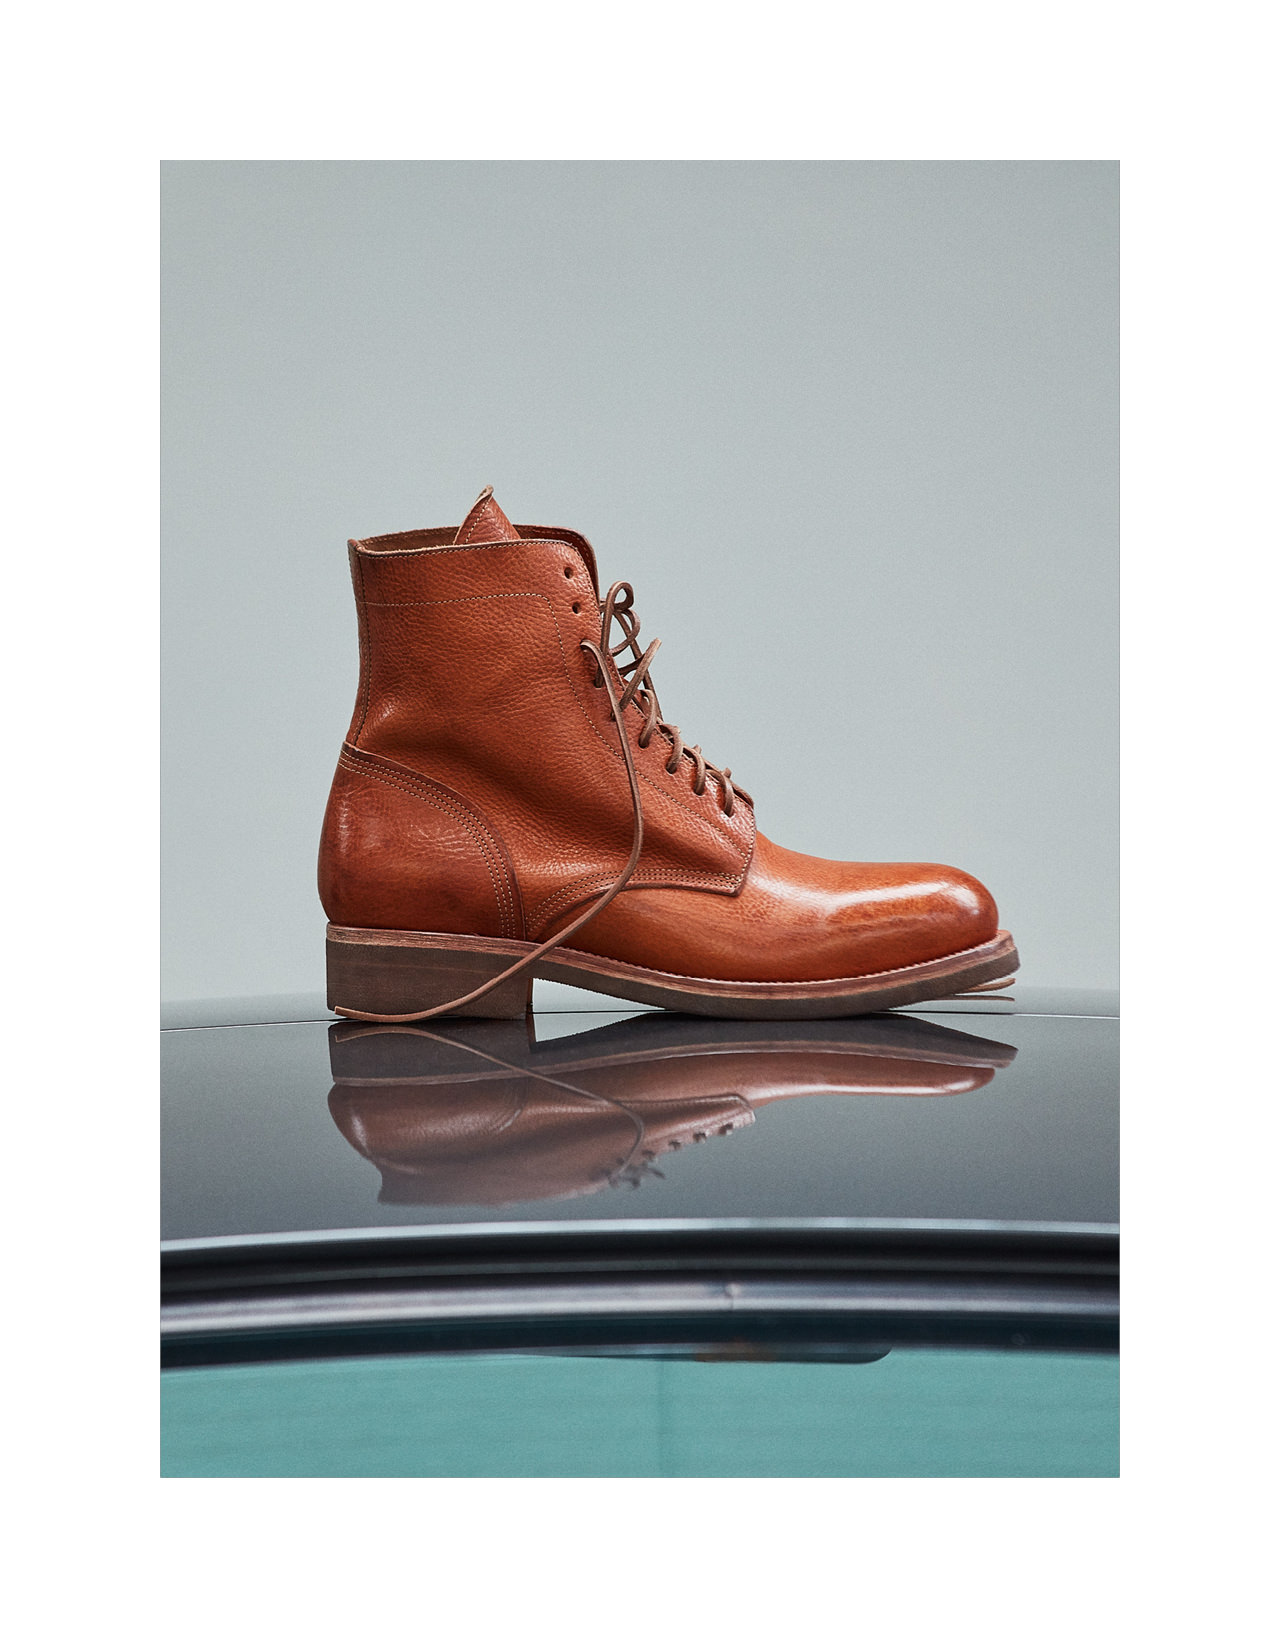 TOM ANKLE BOOTS IN NATURAL BROWN LEATHER